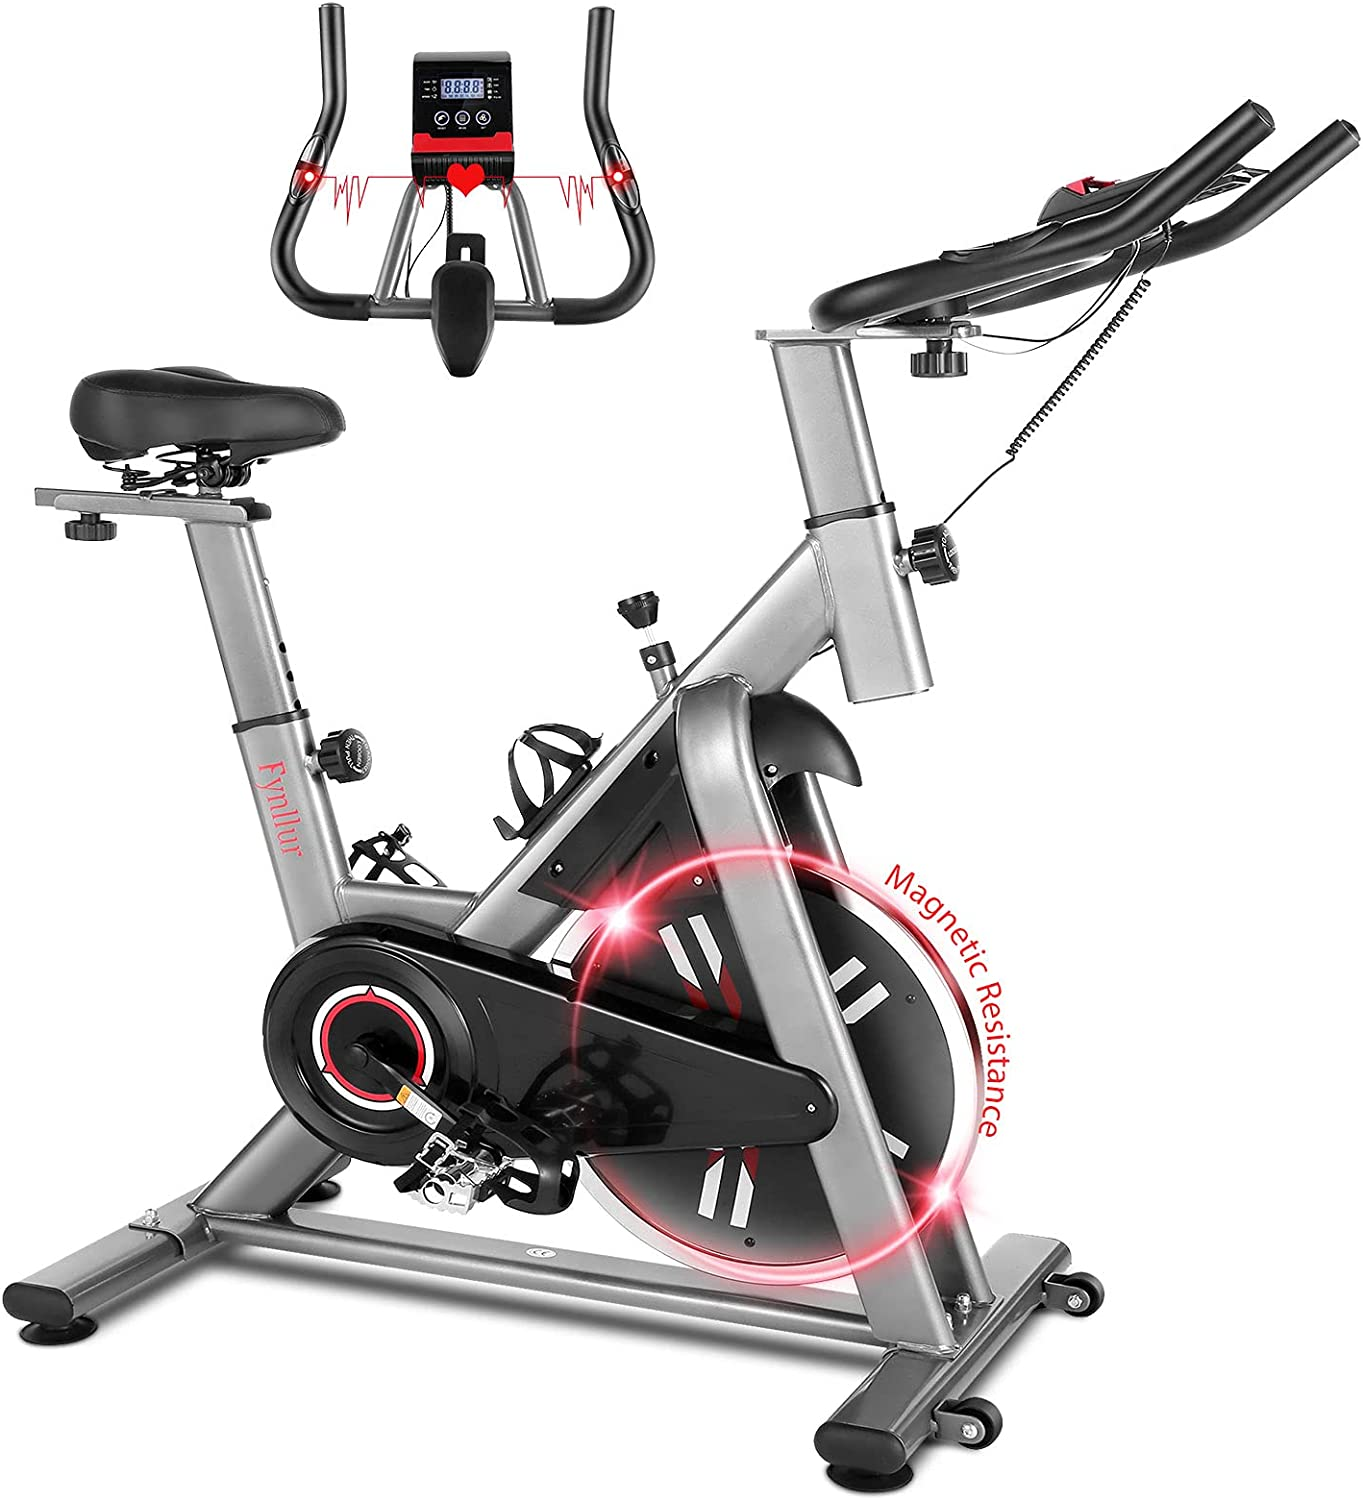 Fynllur Exercise Bike supreme Indoor Cycling Station 1 year warranty Fitness